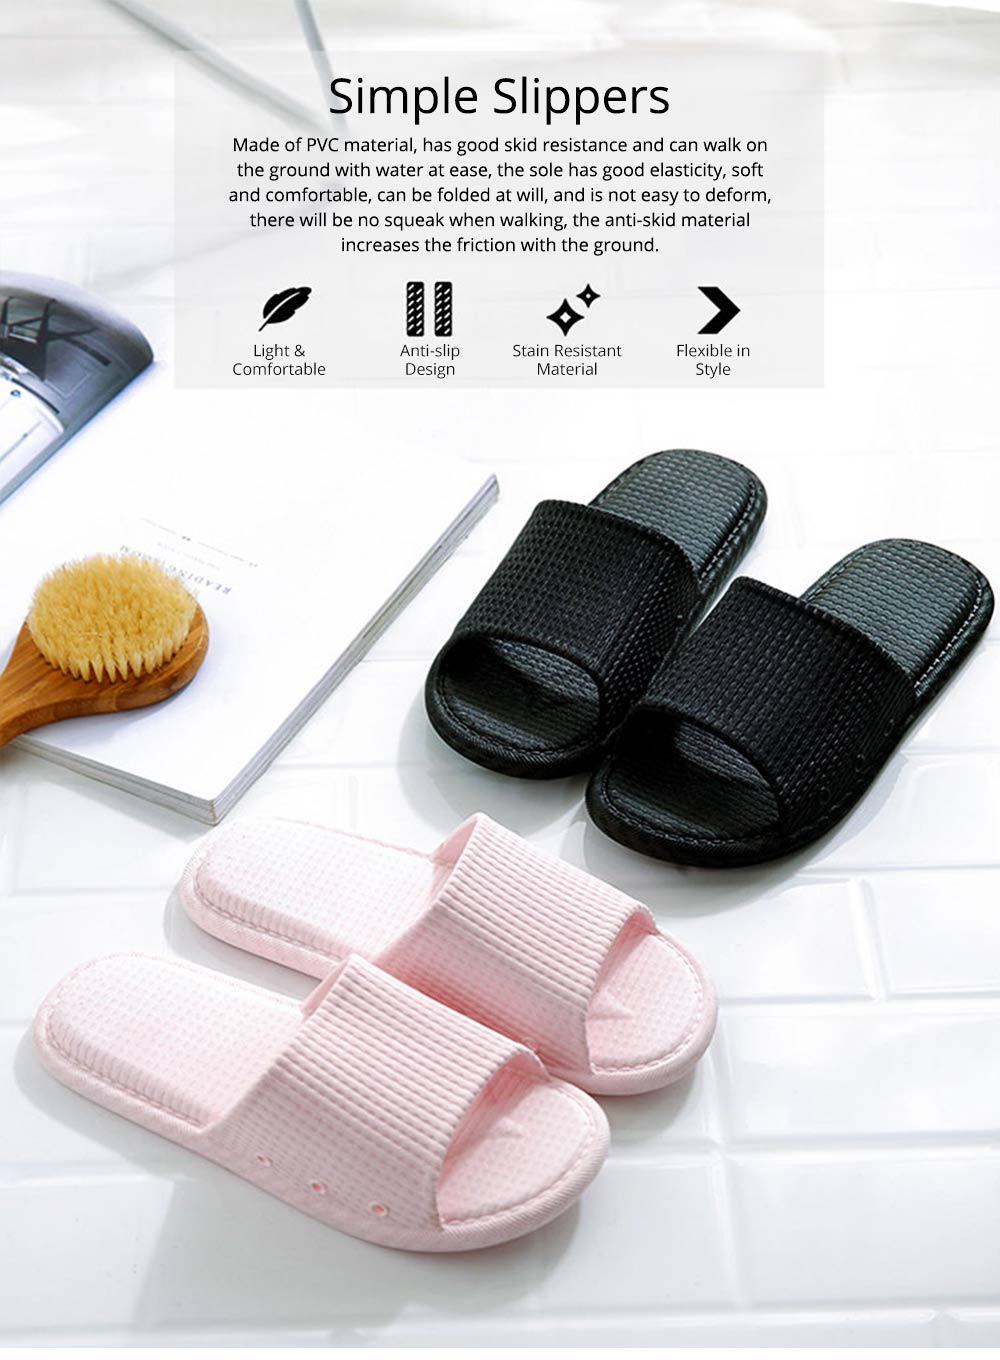 Summer Slippers PVC Anti-slip Soft for Couples Stain Resistant Comfortable Household Bathroom Slippers 2019 New 0